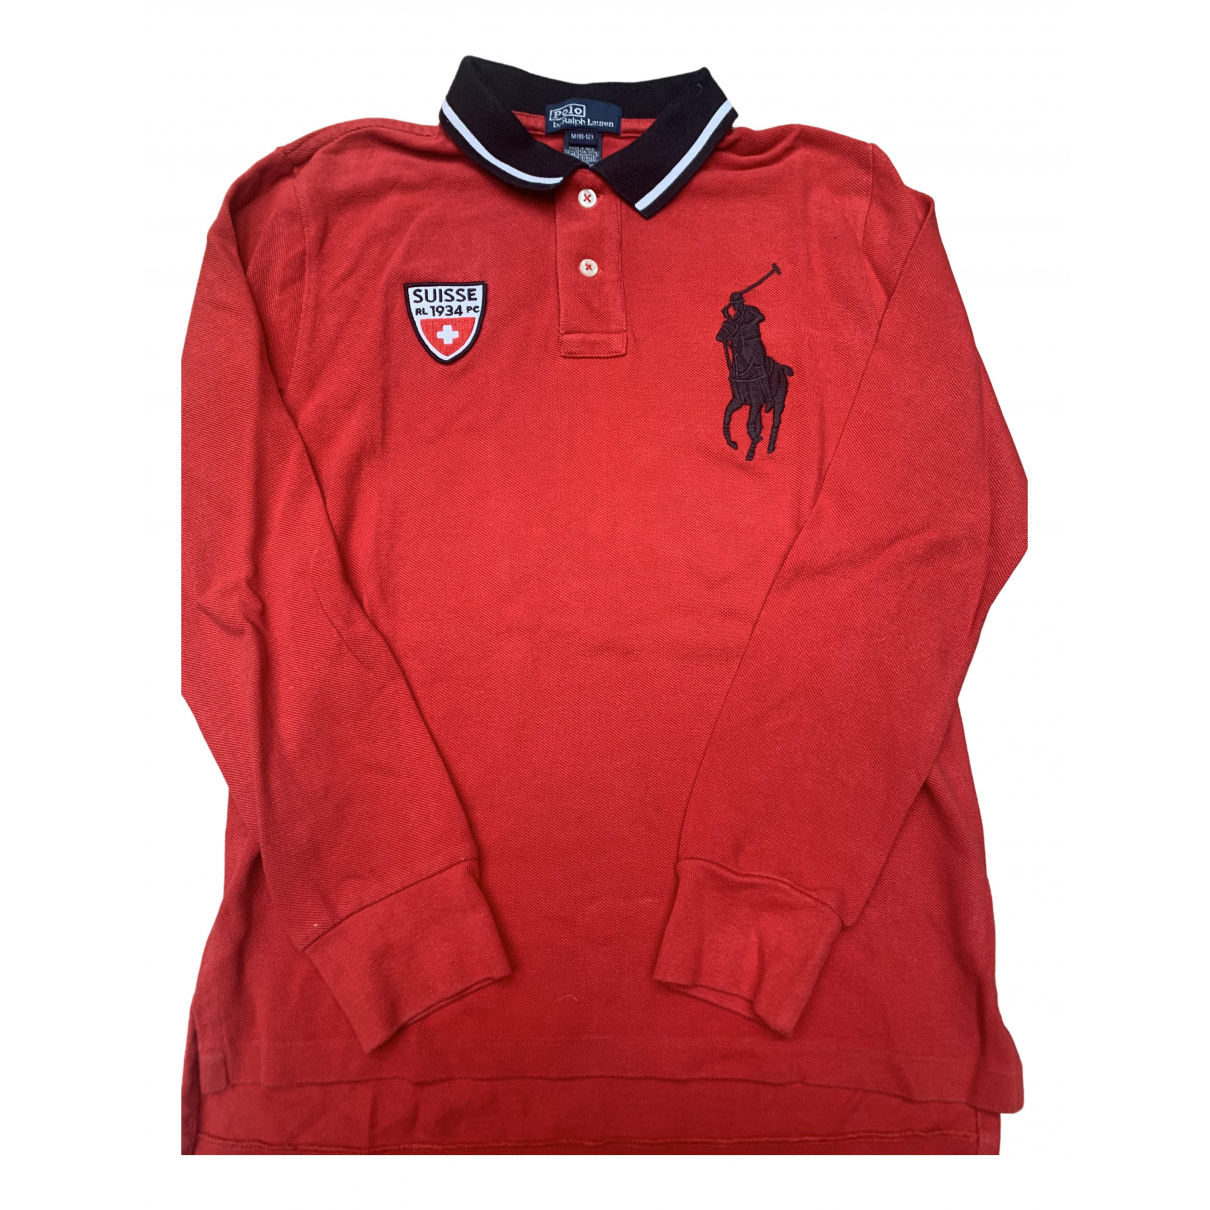 Polo Ralph Lauren \N Red Cotton  top for Kids 10 years - until 56 inches UK